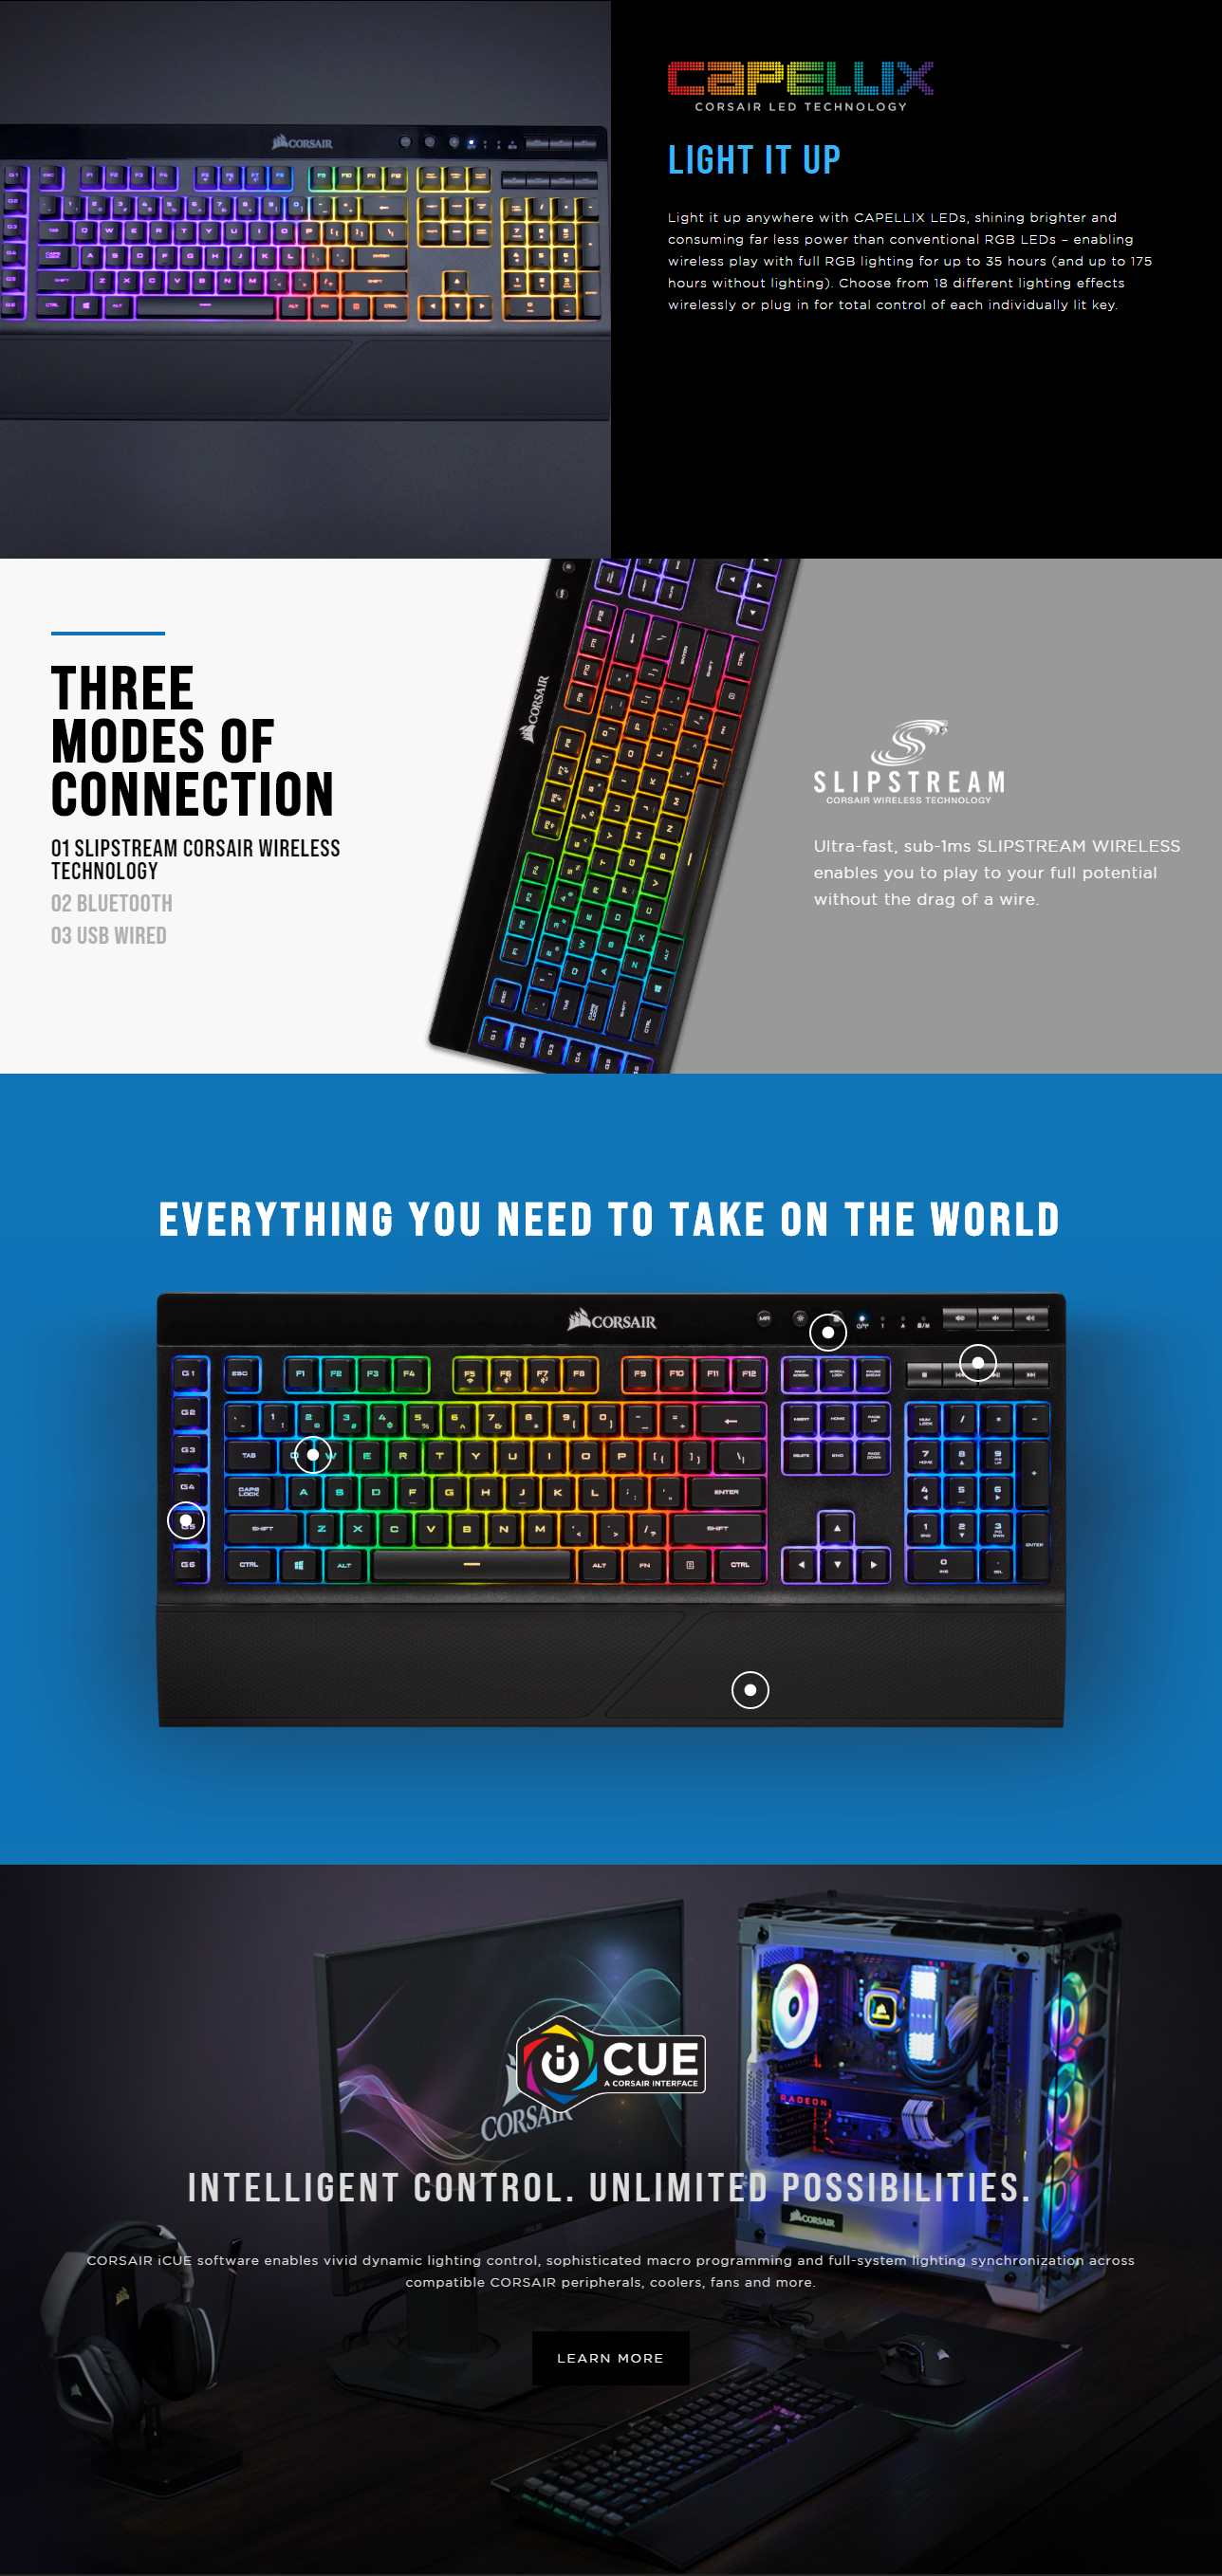 A large marketing image providing additional information about the product Corsair Gaming K57 RGB Wireless Keyboard - Additional alt info not provided